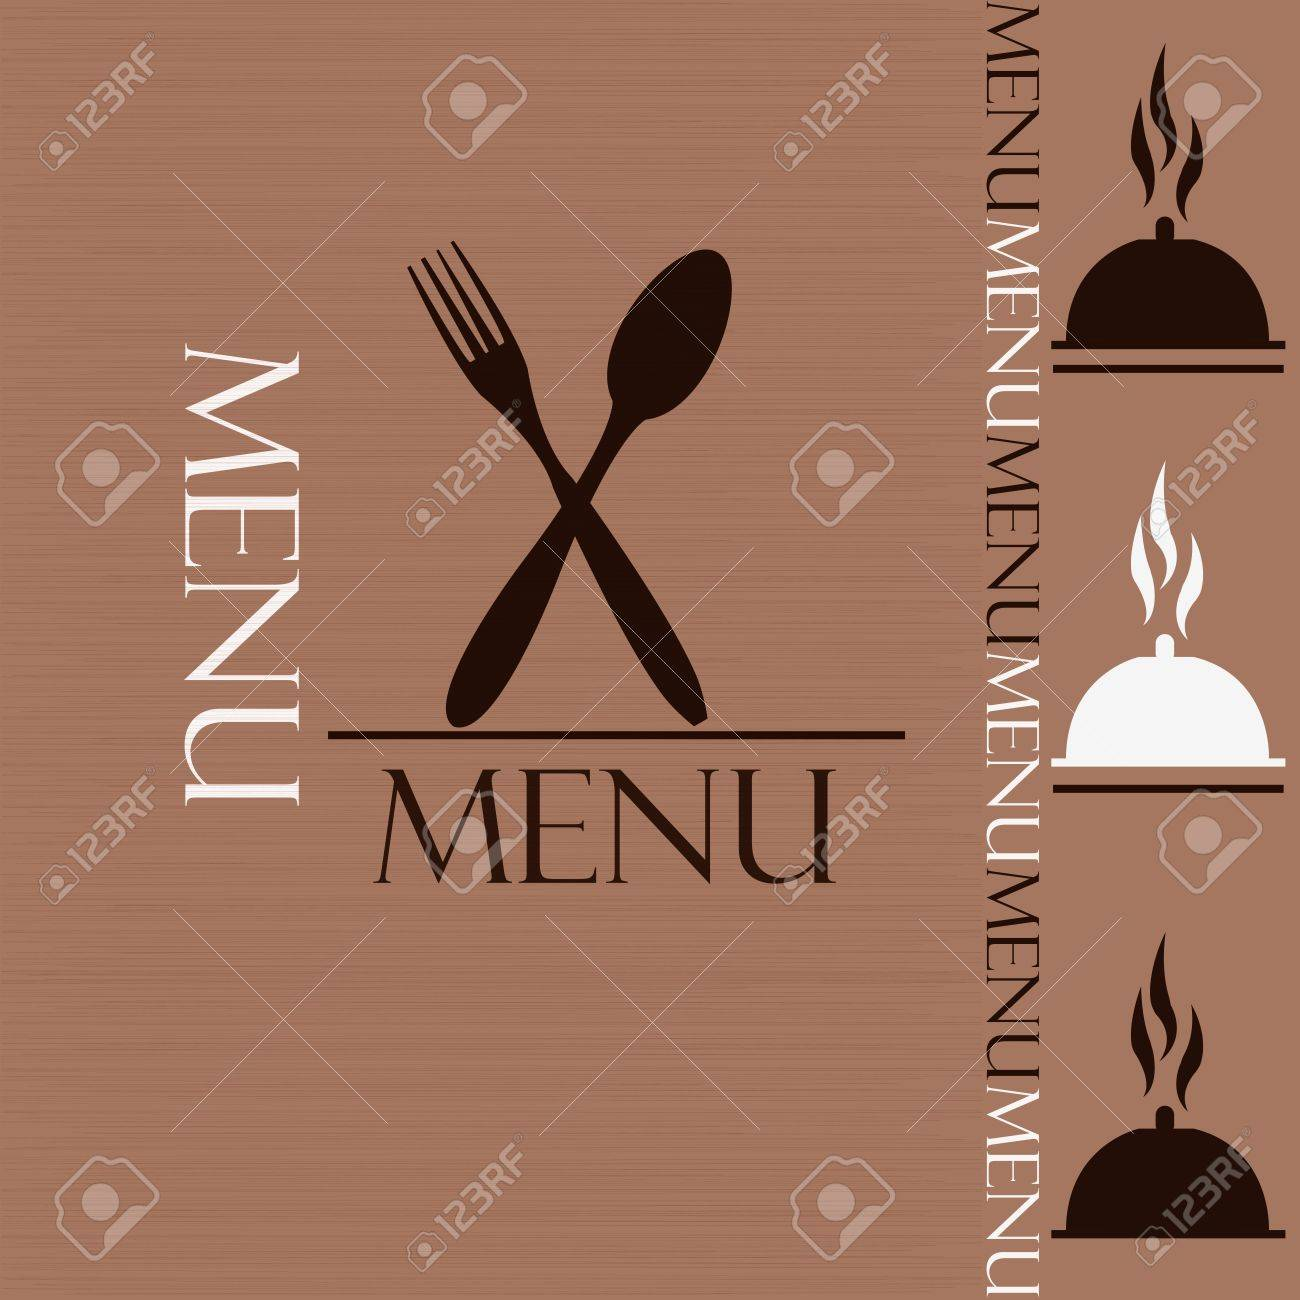 sample menu for restaurant and cafe royalty free cliparts vectors